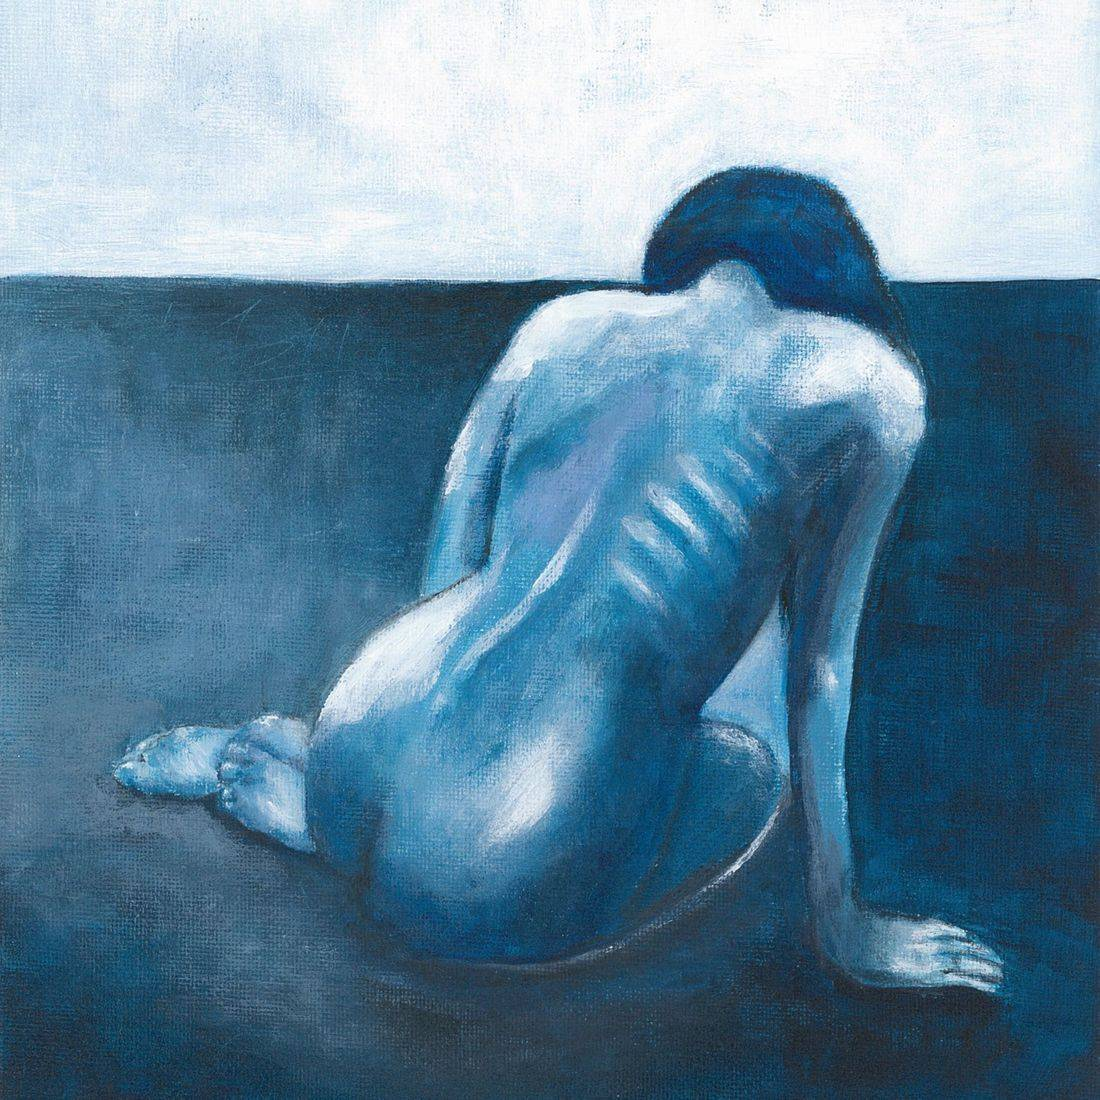 Listen To Your Heart, Art And Soul By The Lake, Acrylic Painting on Canvas, Blue Painting, Impressionistic Painting, Home Decor, Blue Nude